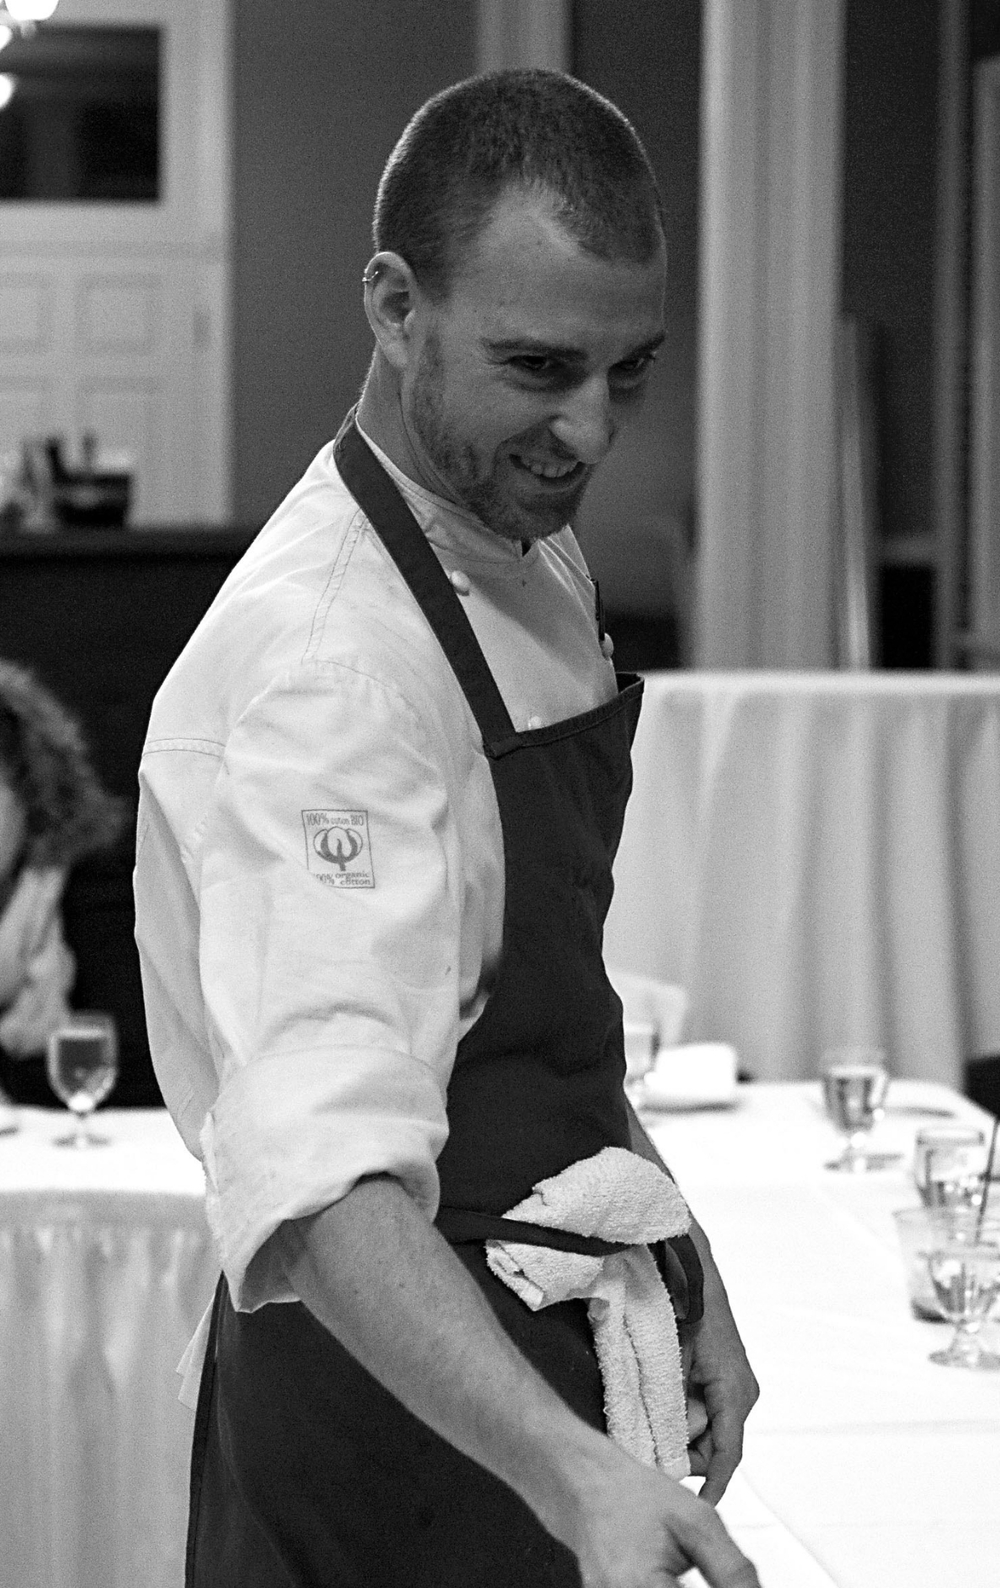 Stu Hummel Owner / Chefarmer & Executive Chef